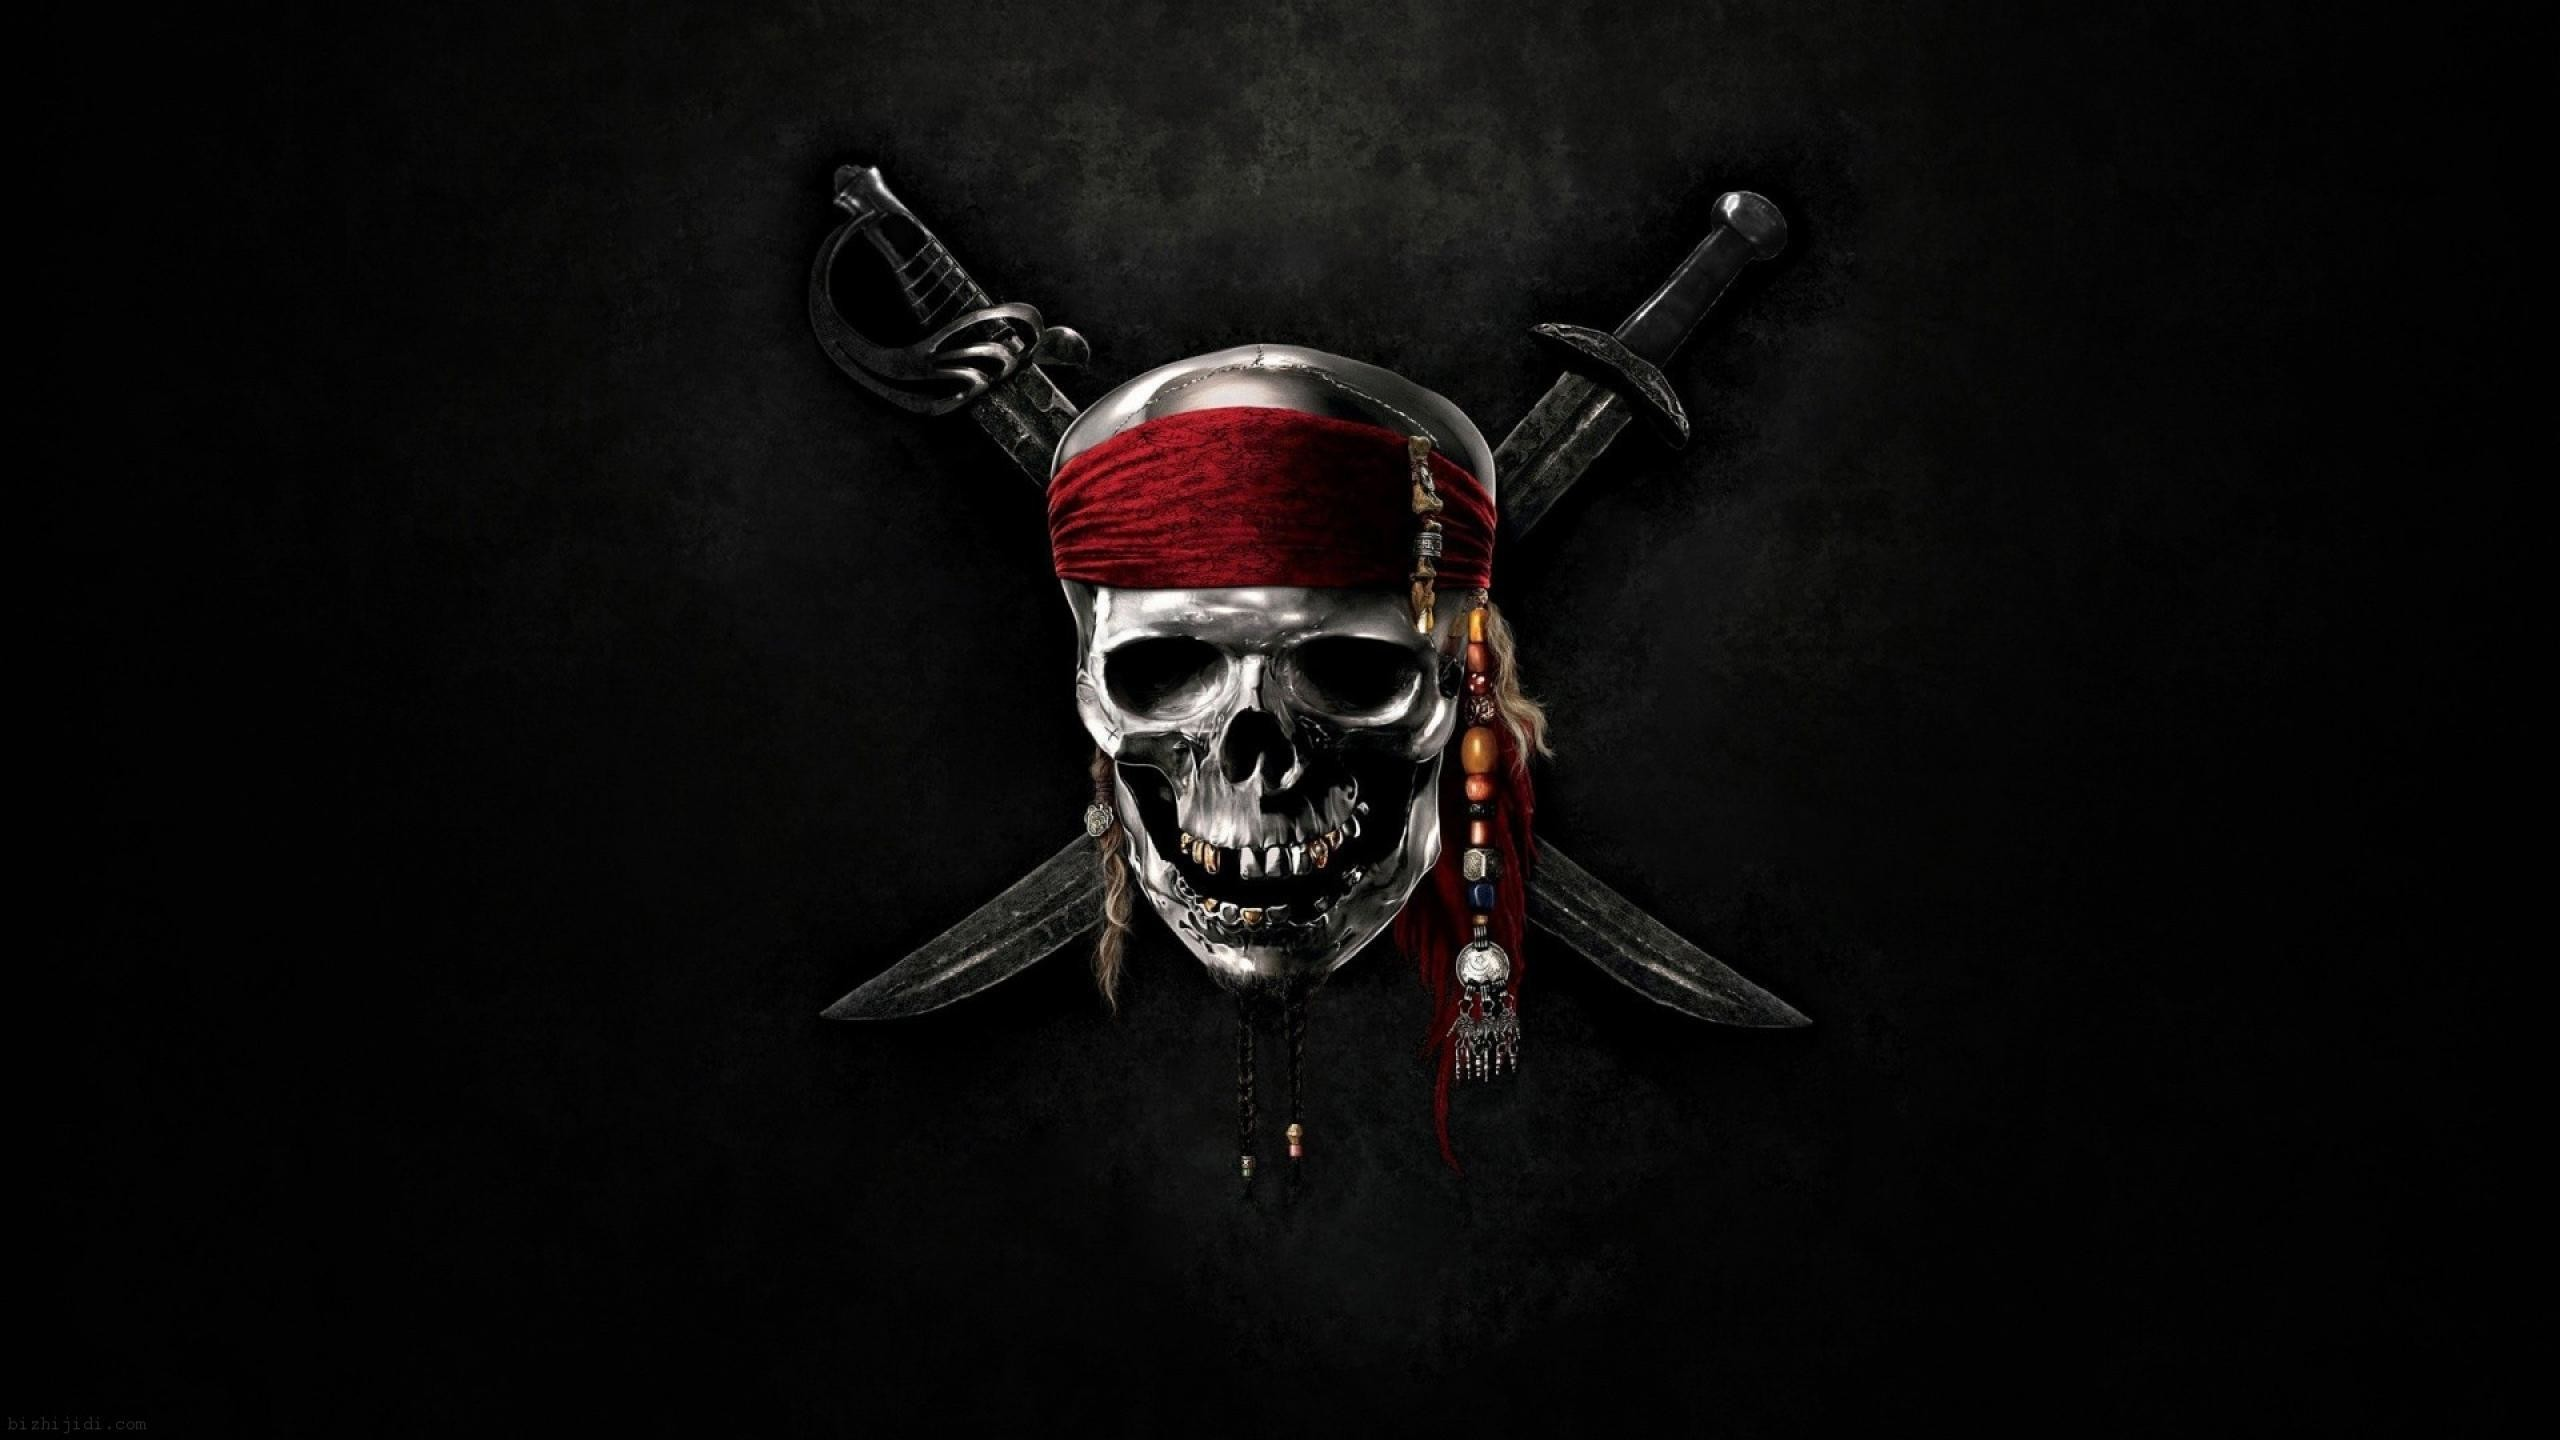 Skull Wallpapers For Android ·①